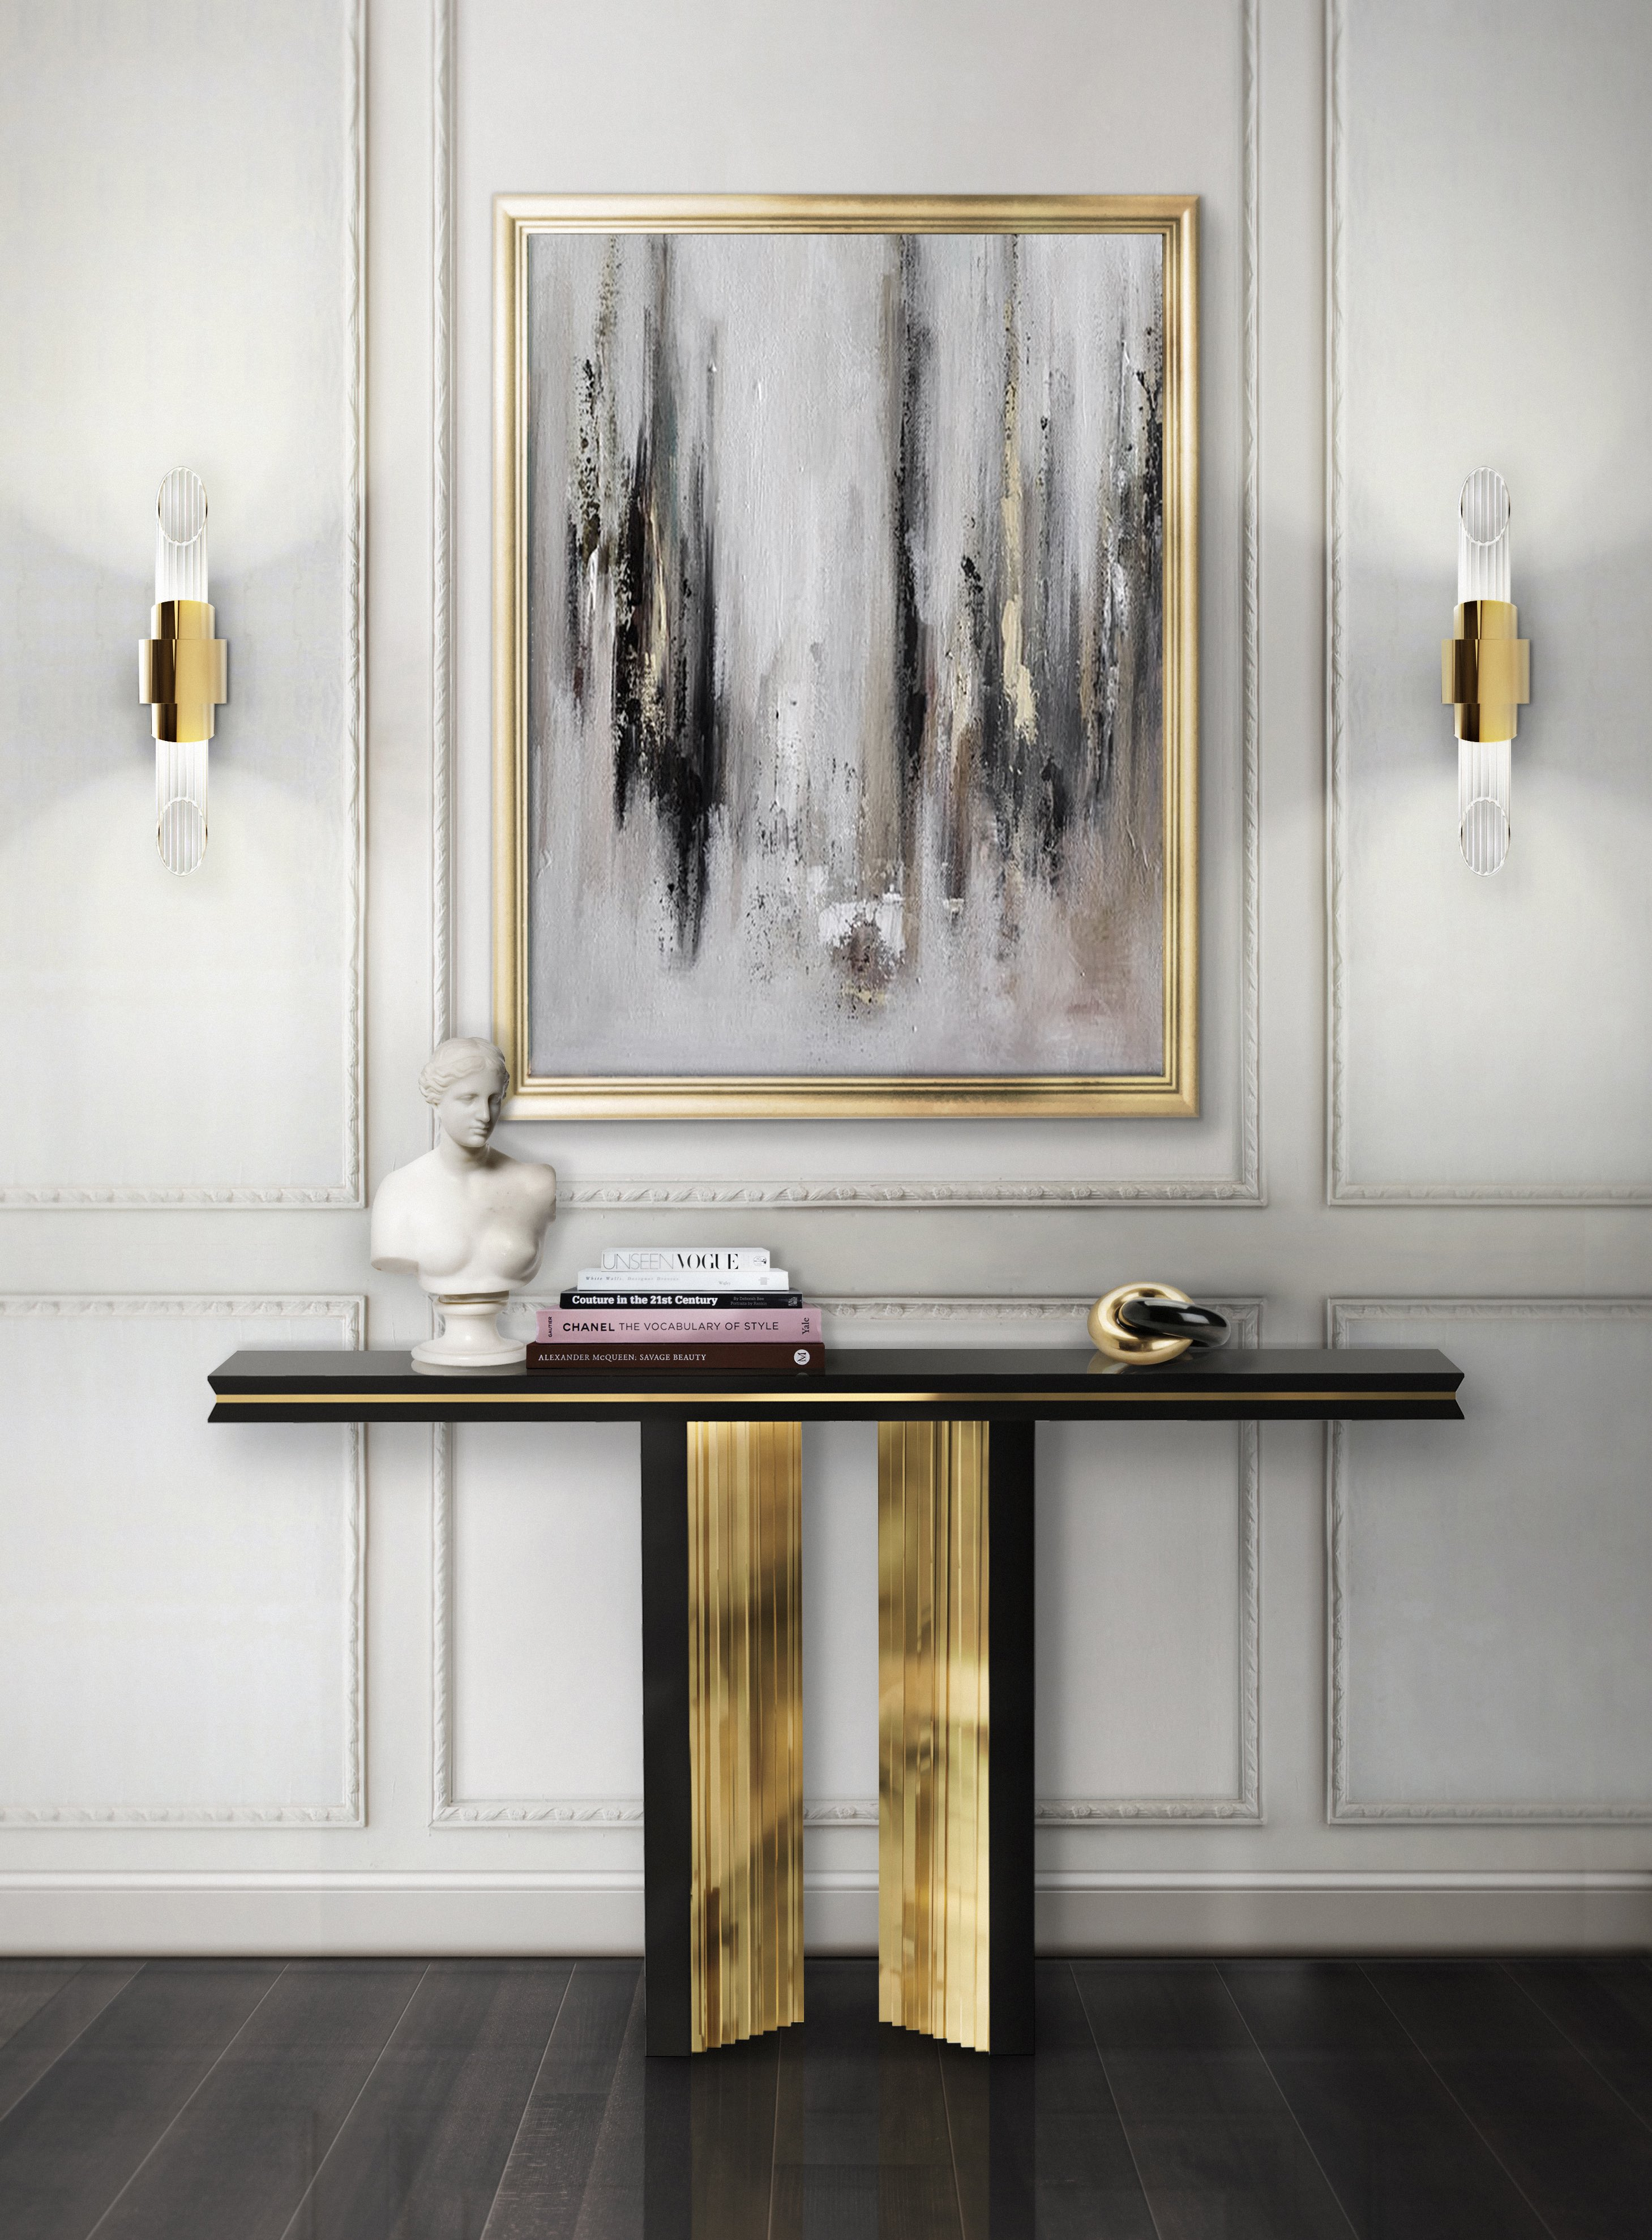 console tables Breathtaking Console Tables With Gold Brass Finish 8 Breathtaking Console Tables With Gold Brass Finish